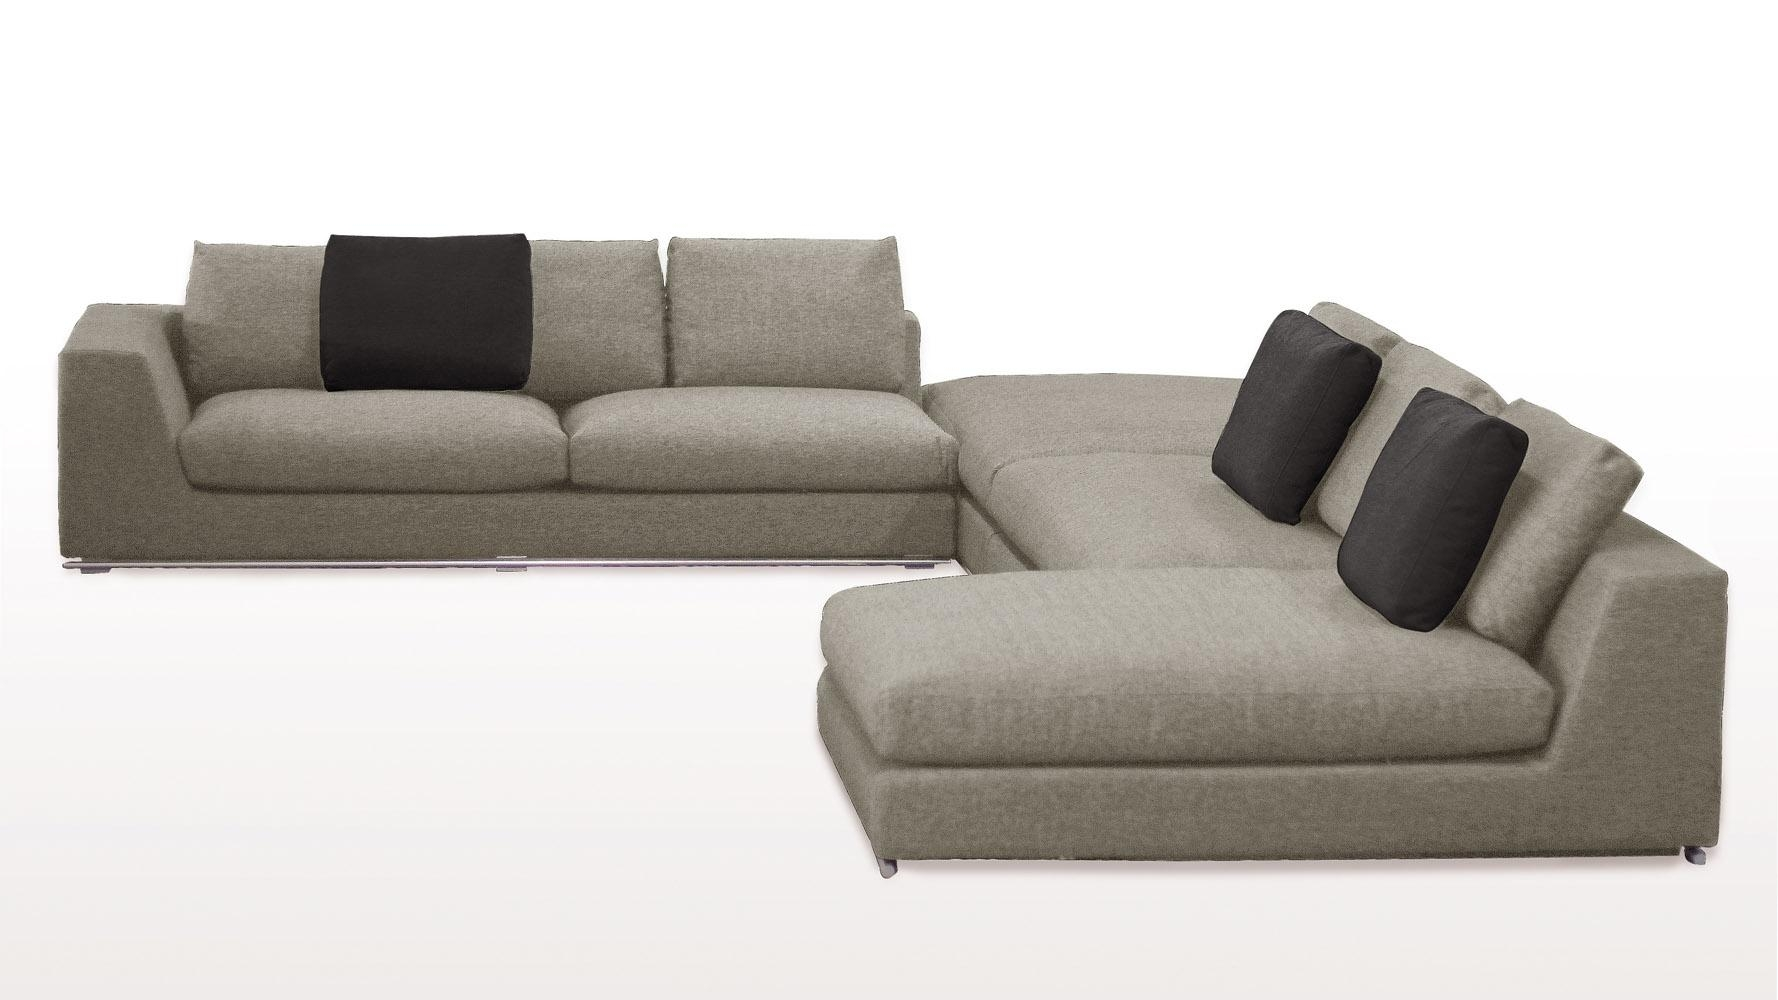 Comodo Sectional Sofa With Ottoman – Grey | Zuri Furniture With Regard To Armless Sectional Sofa (View 5 of 15)